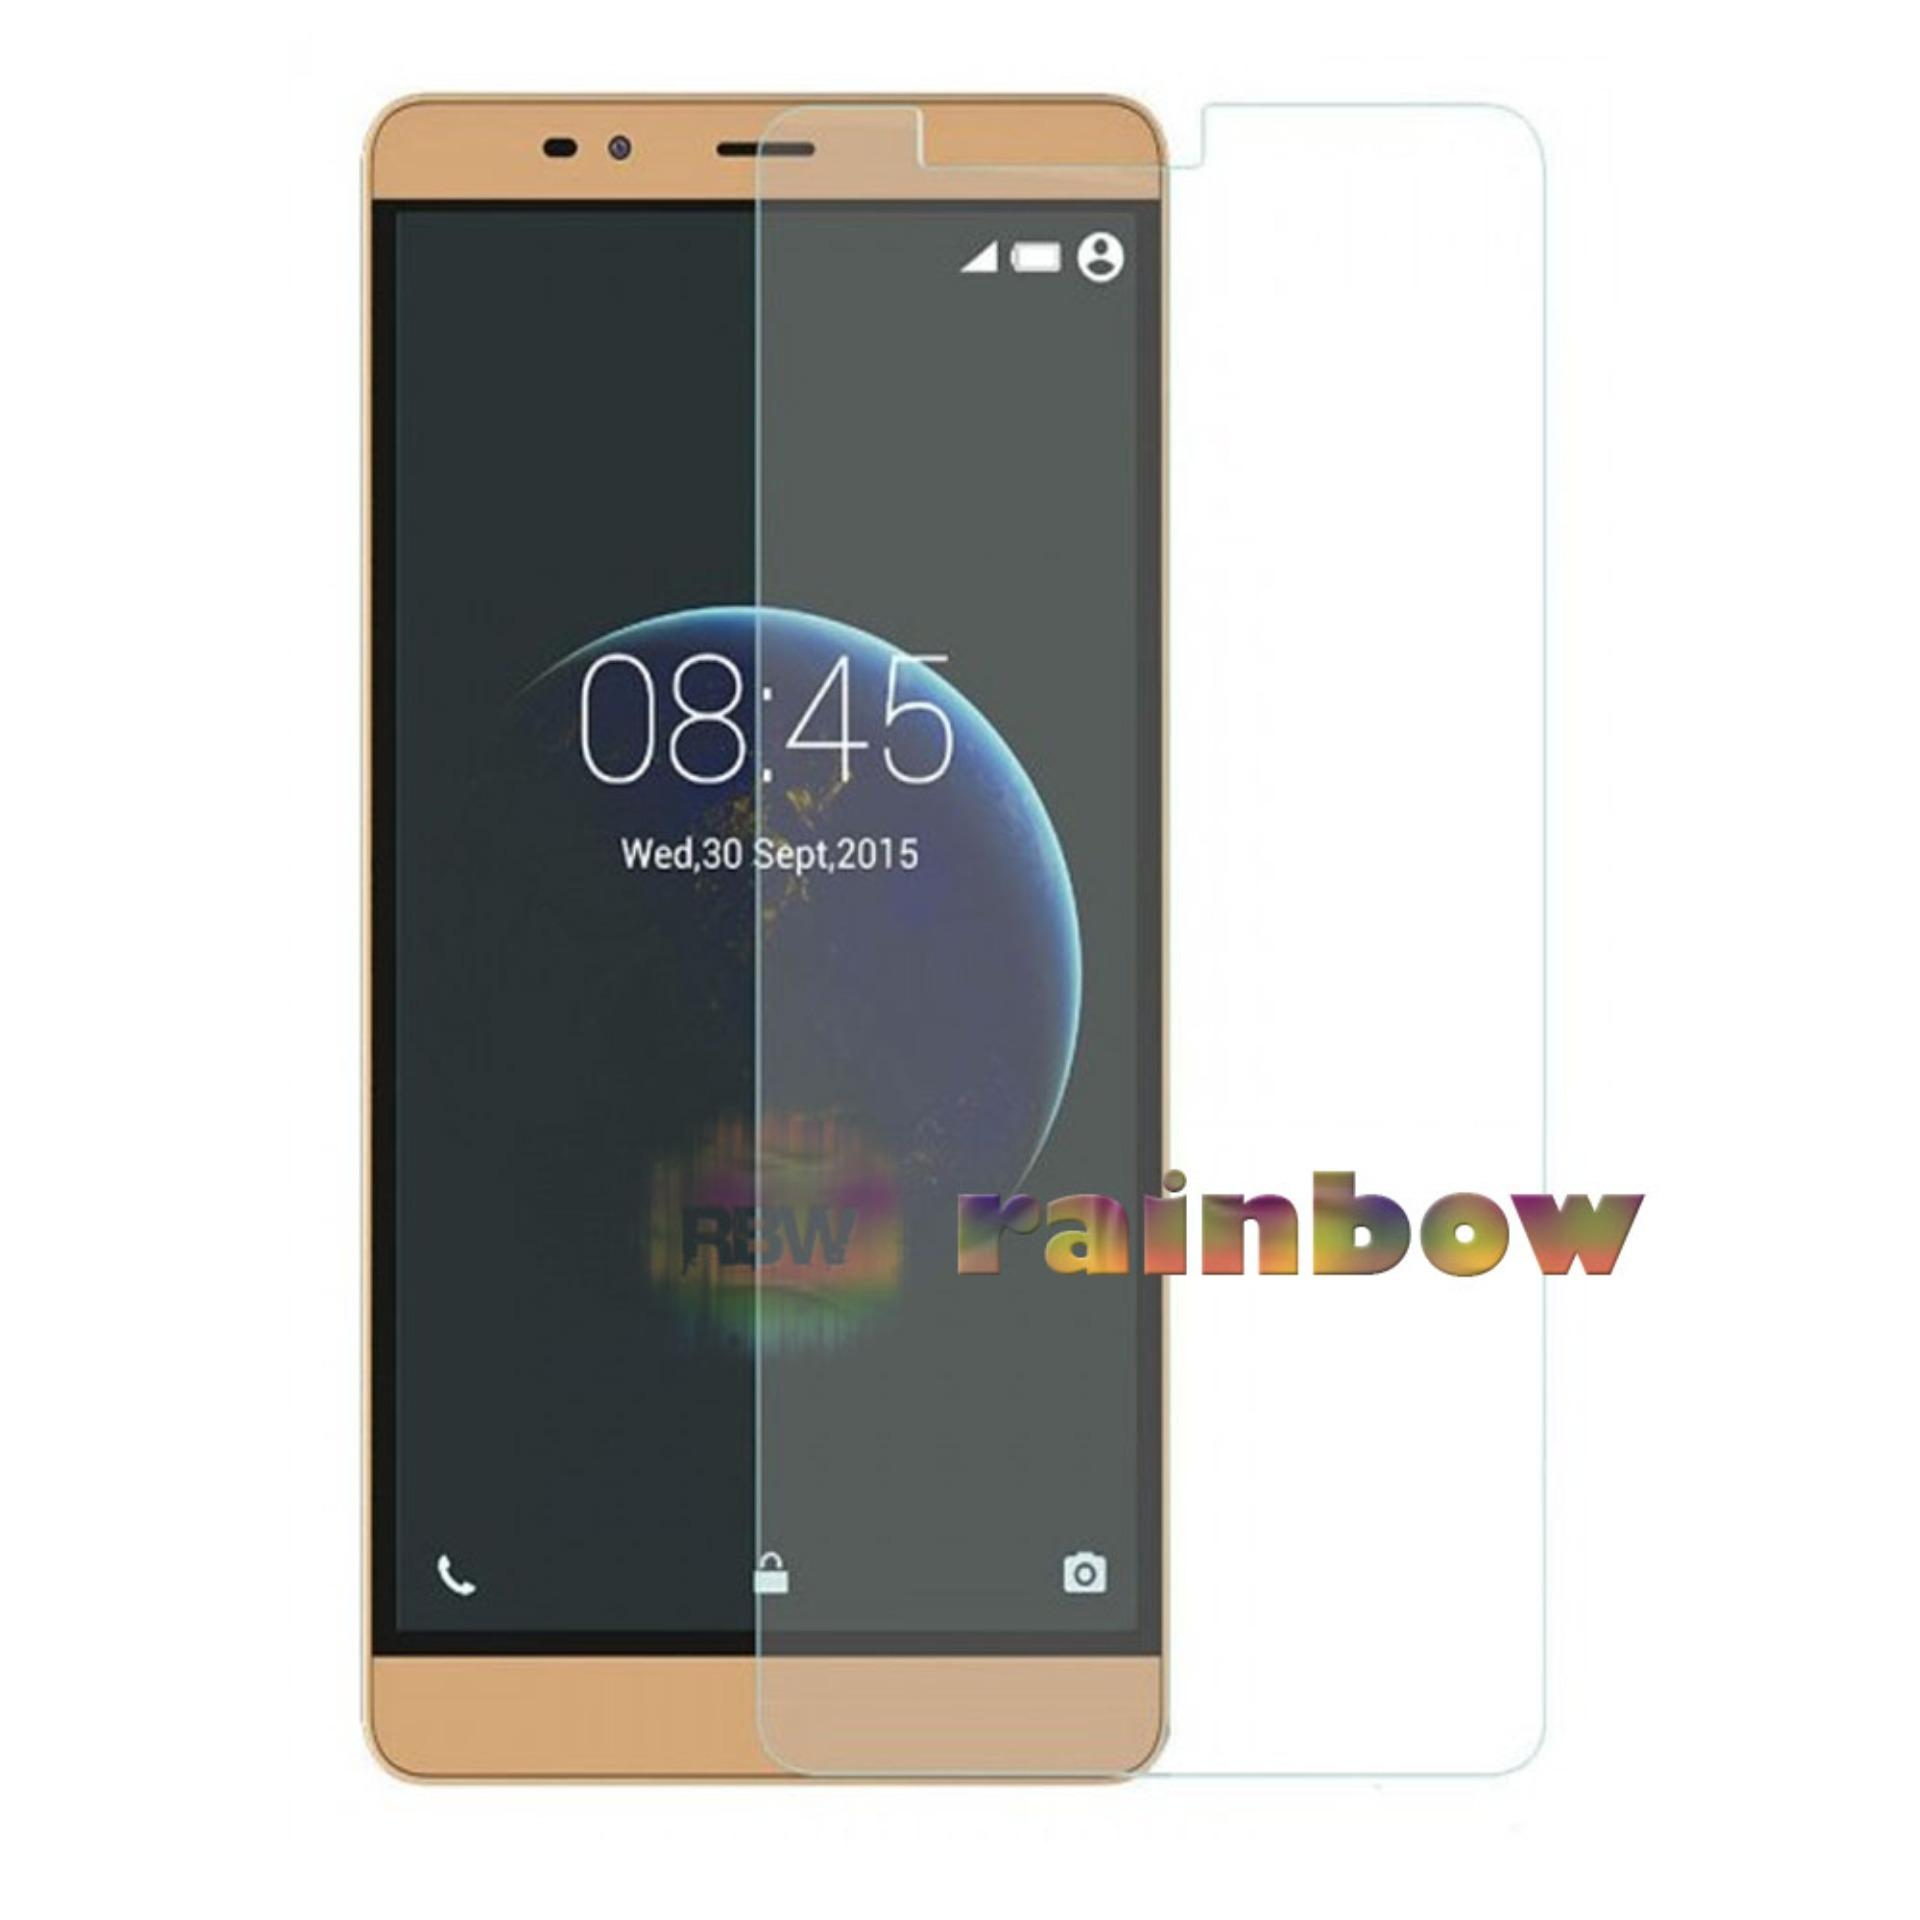 Tempered Glass Infinix Note 2 X600 Screen Protector 9H / Pelindung Layar Handphone / Anti-bubbles,